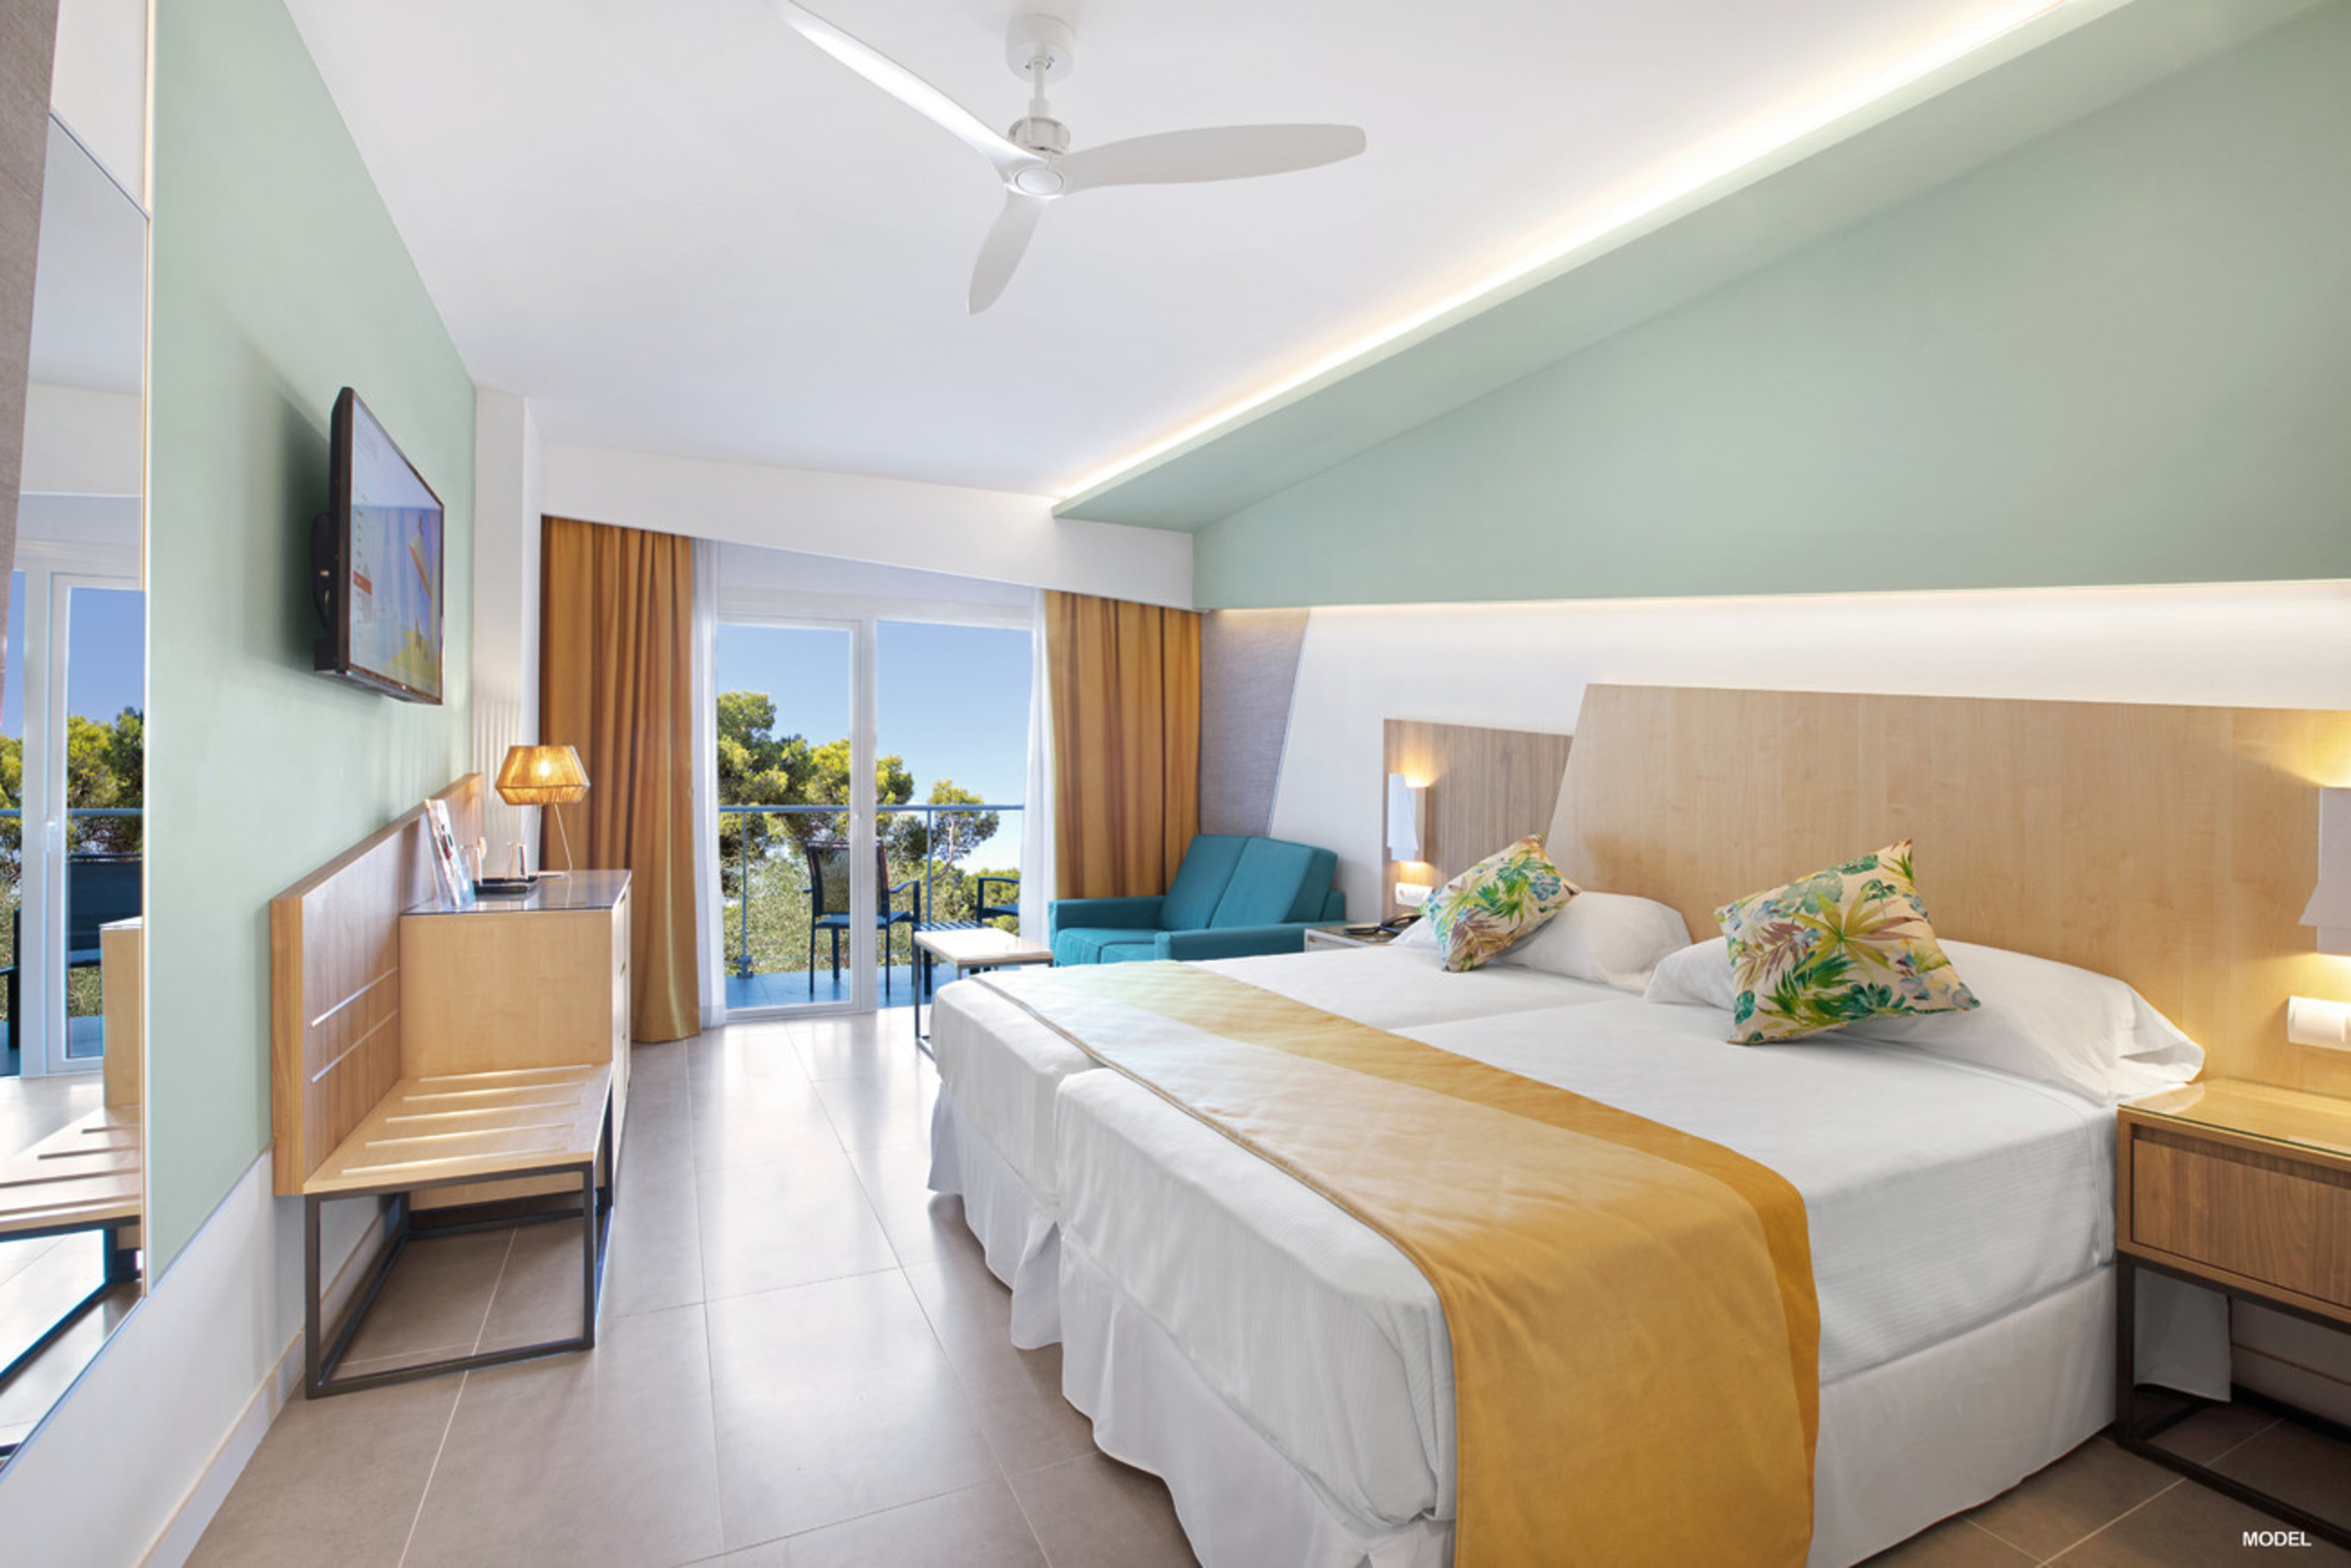 Room of the Riu Playa Park that will open its doors in Majorca in April 2019